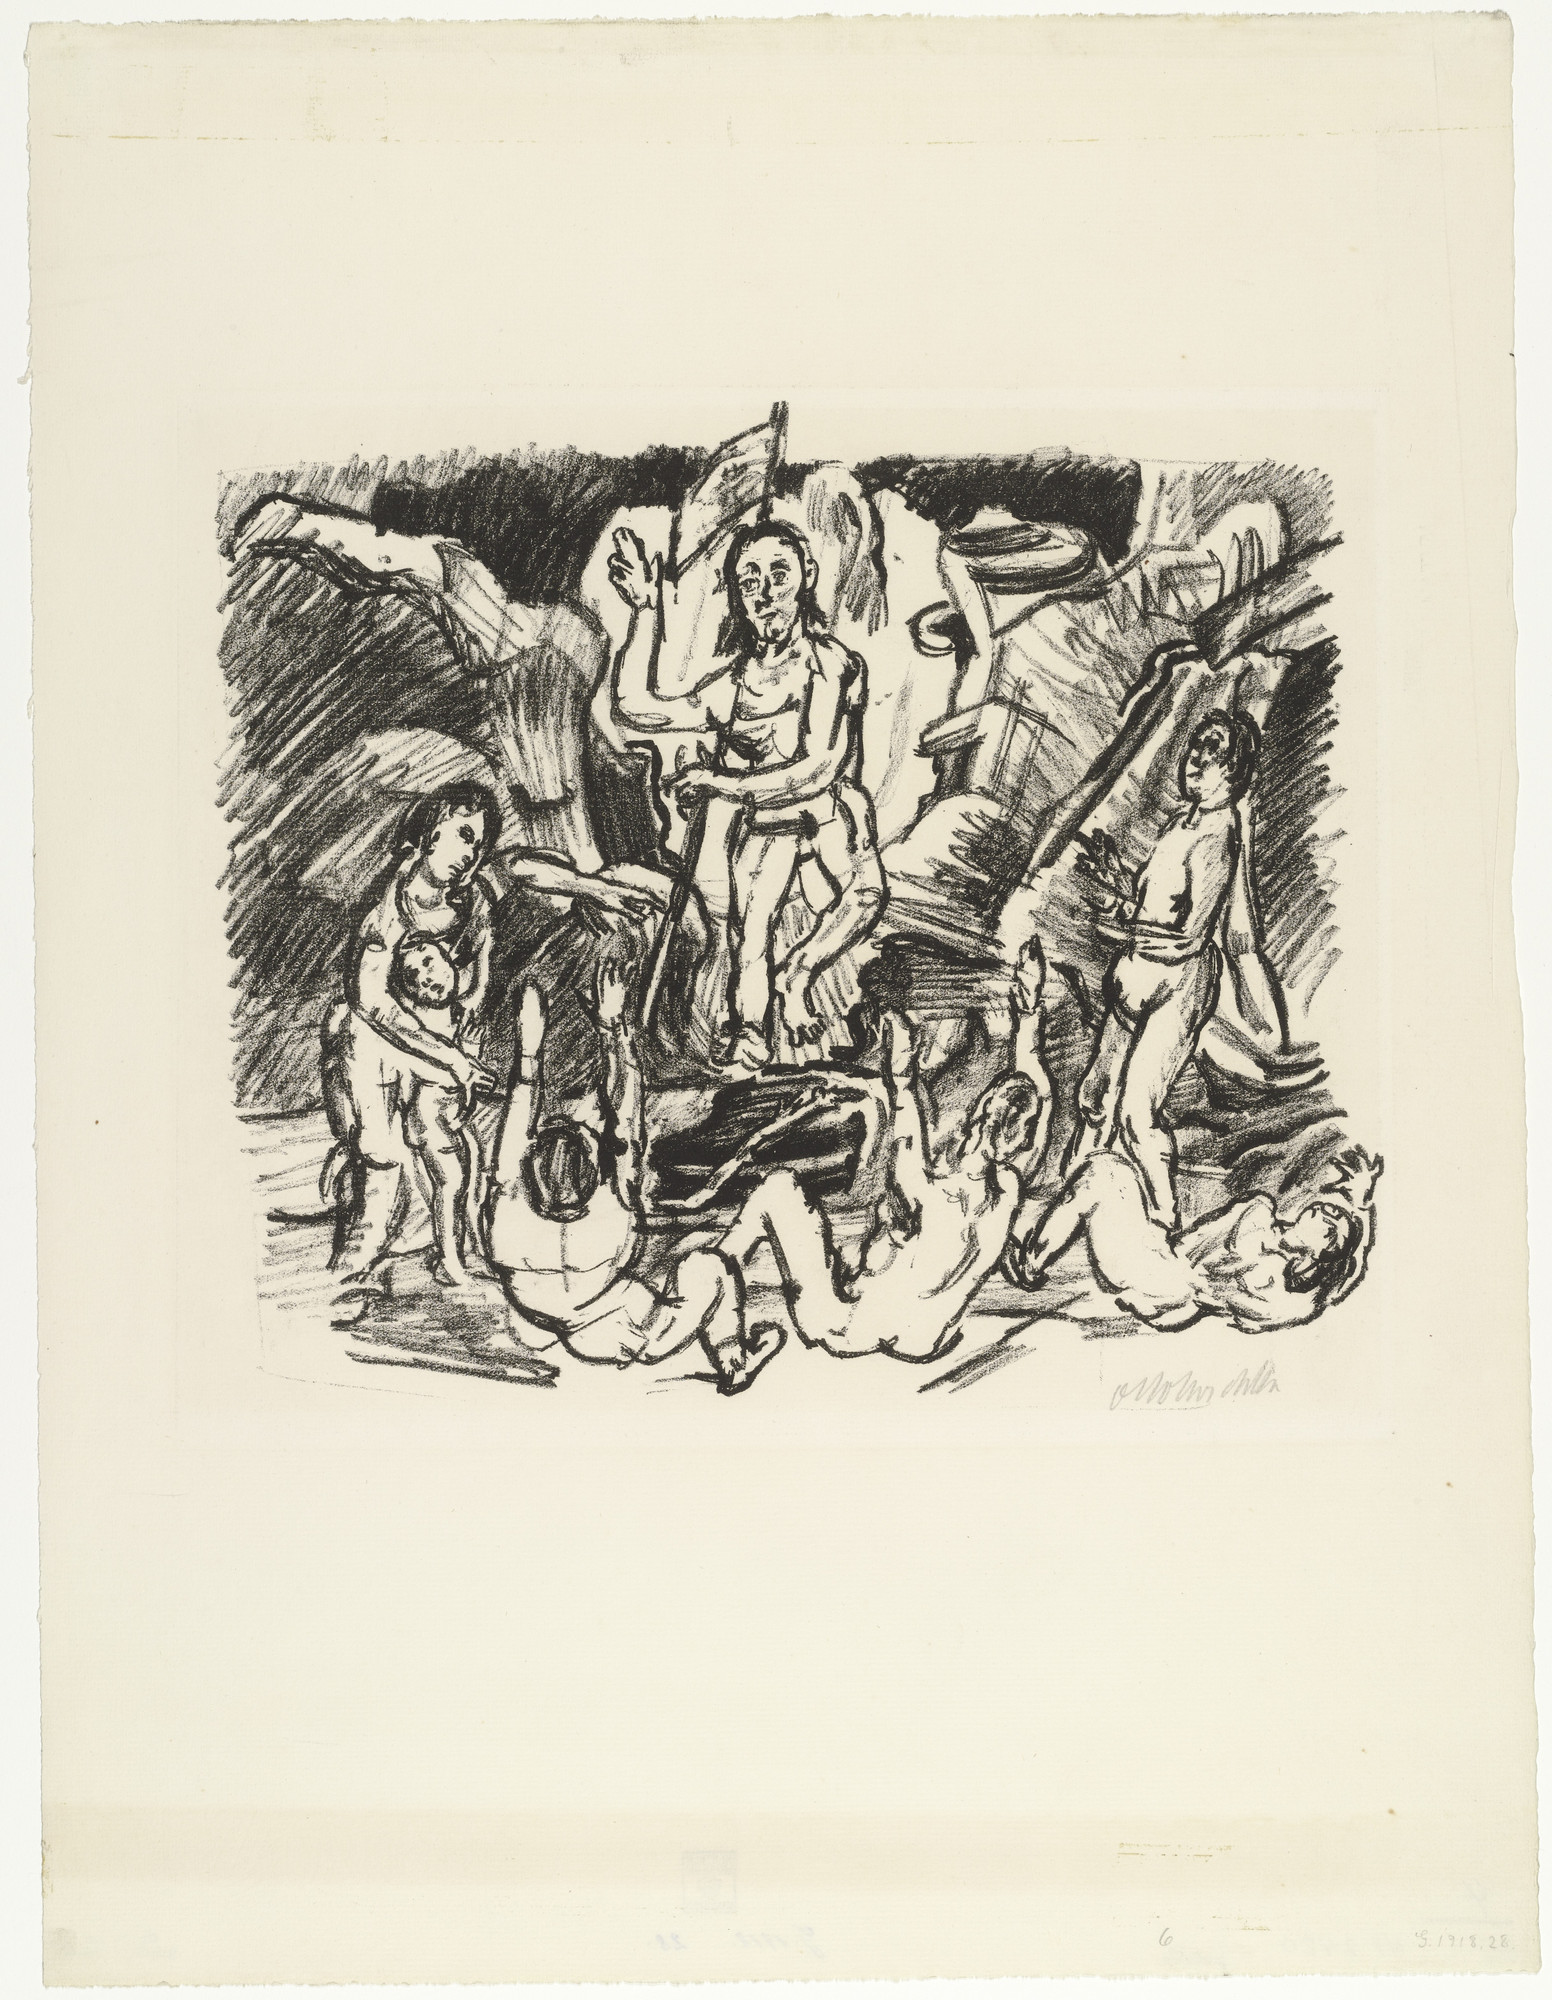 Oskar Kokoschka. The Resurrection (Auferstehung) from the series The Passion (Die Passion). (1916)